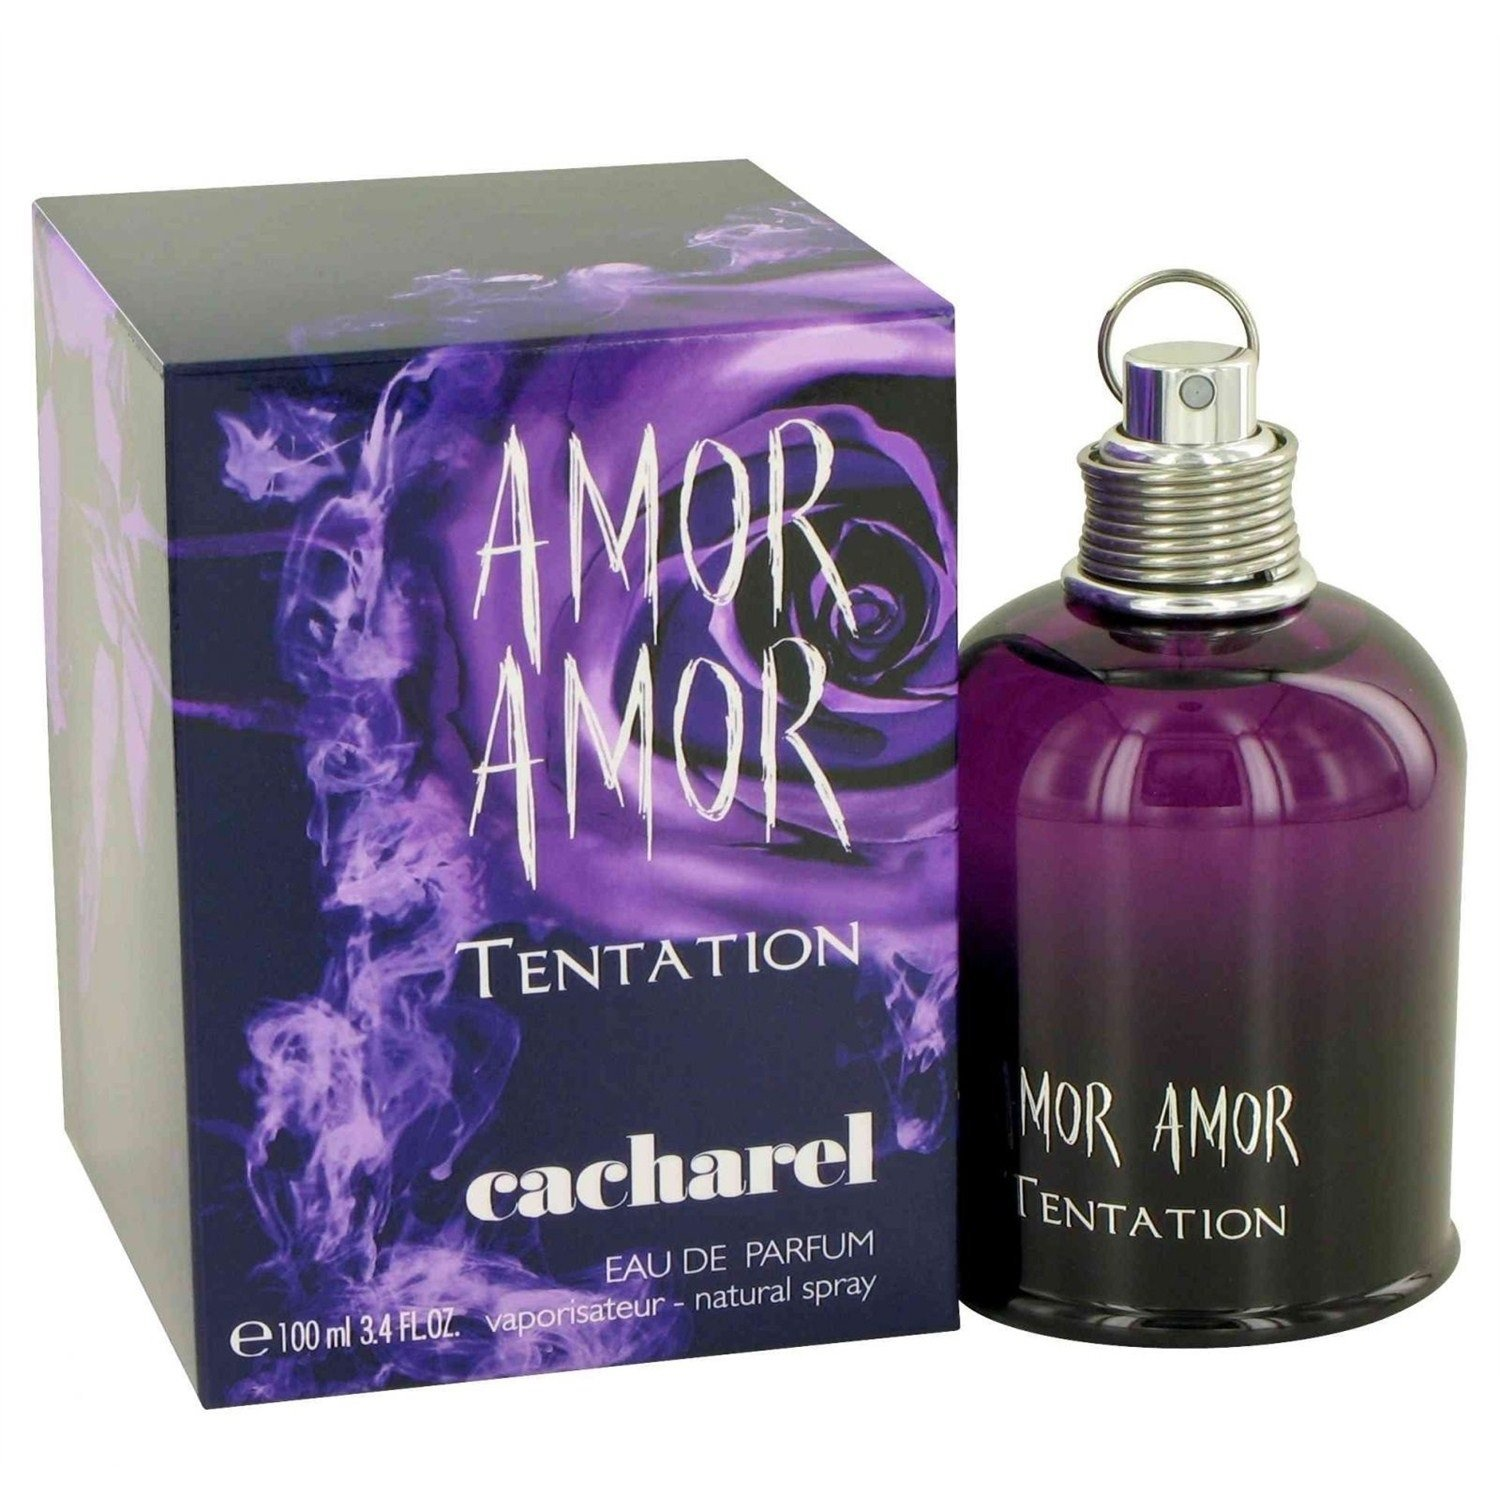 Buy Cacharel Amor Amor Tentation Eau De Parfum For Her 50ml In Cheap